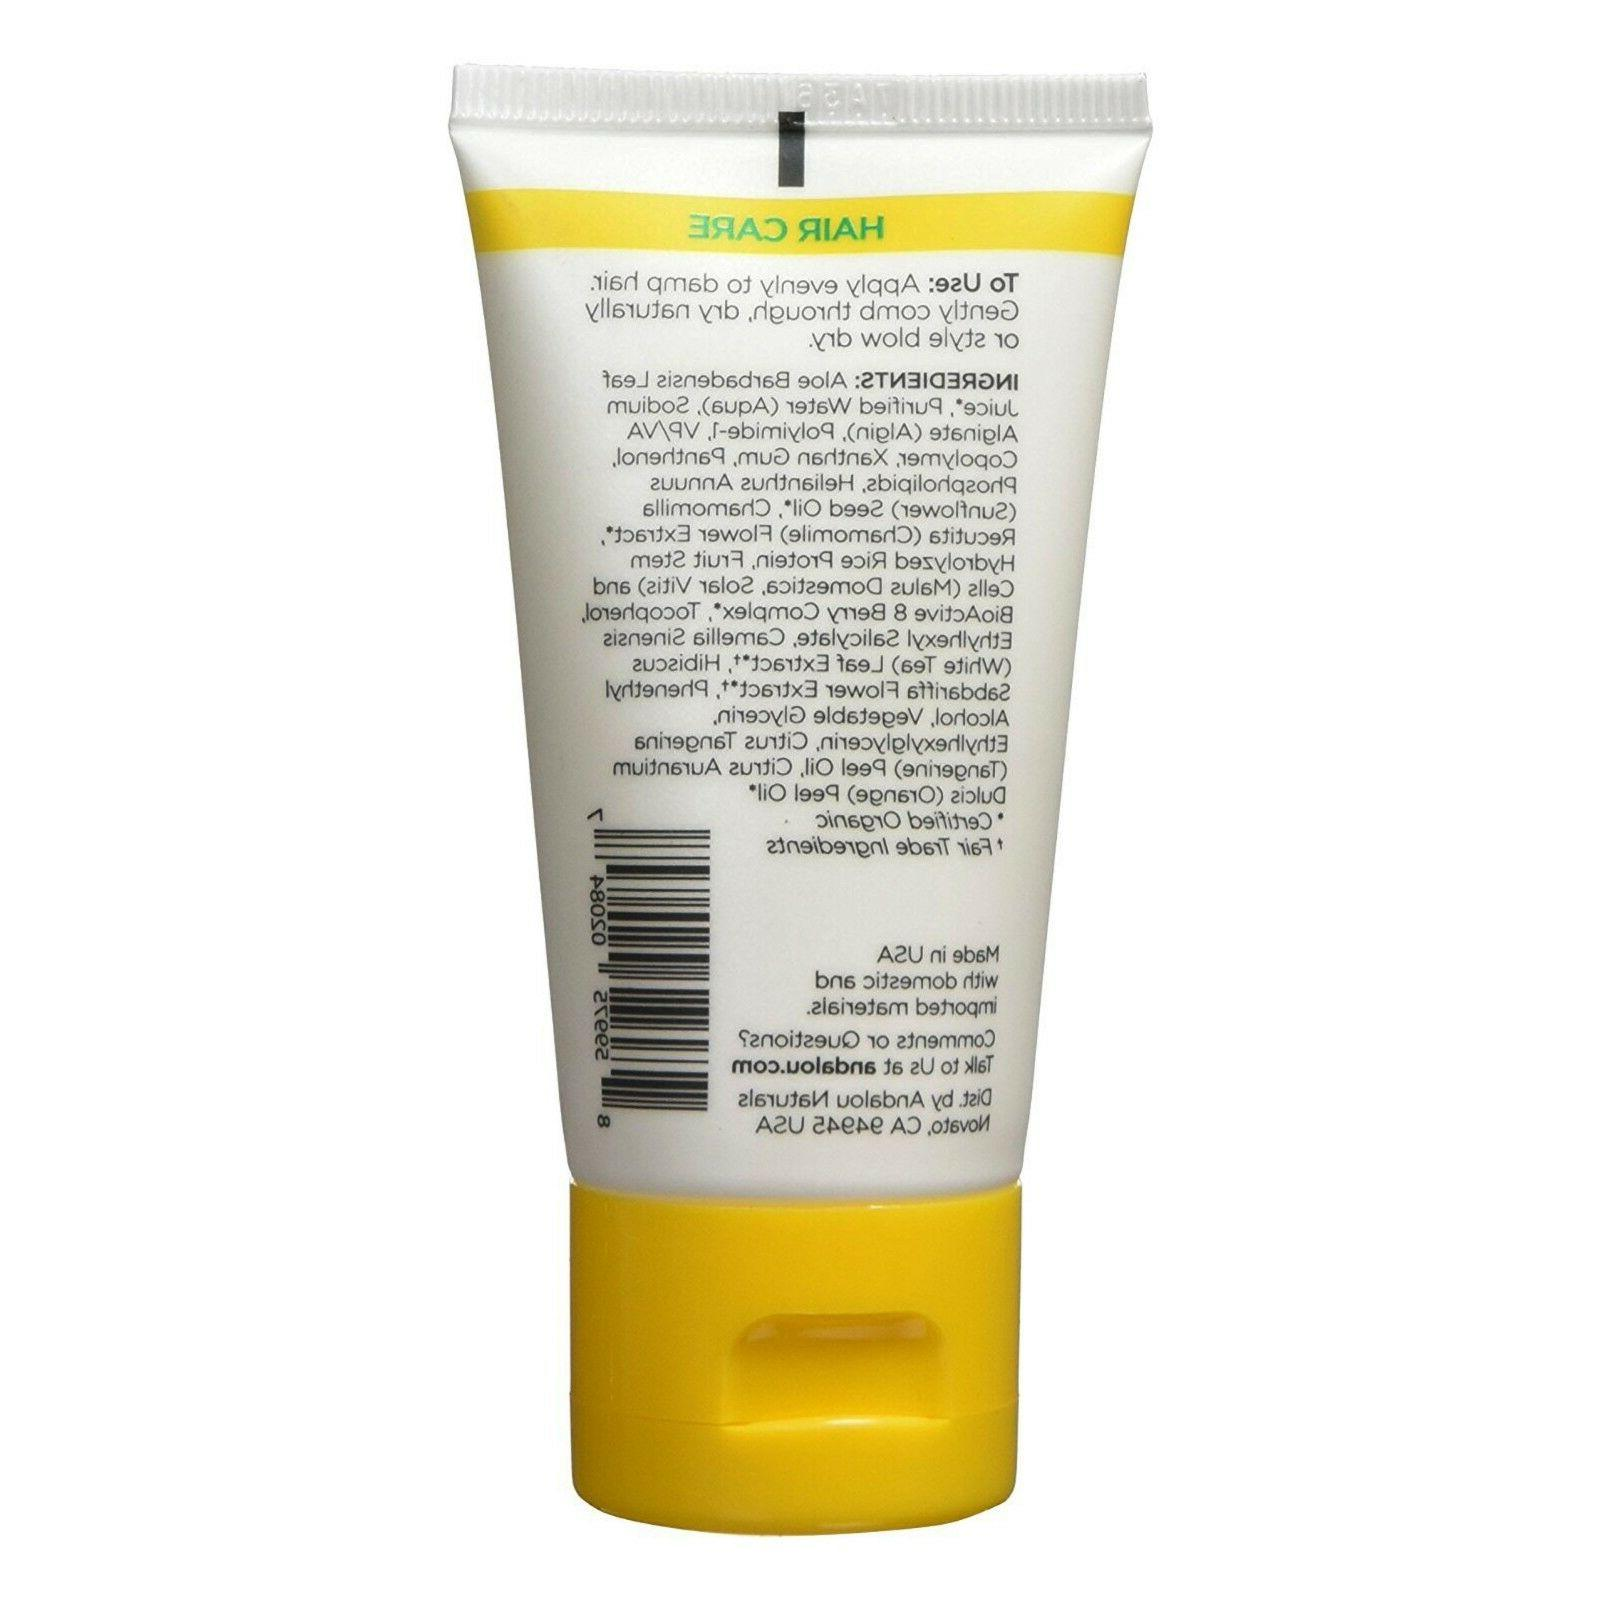 Andalou Naturals Sunflower Citrus Brilliant Styling Gel Hair Types